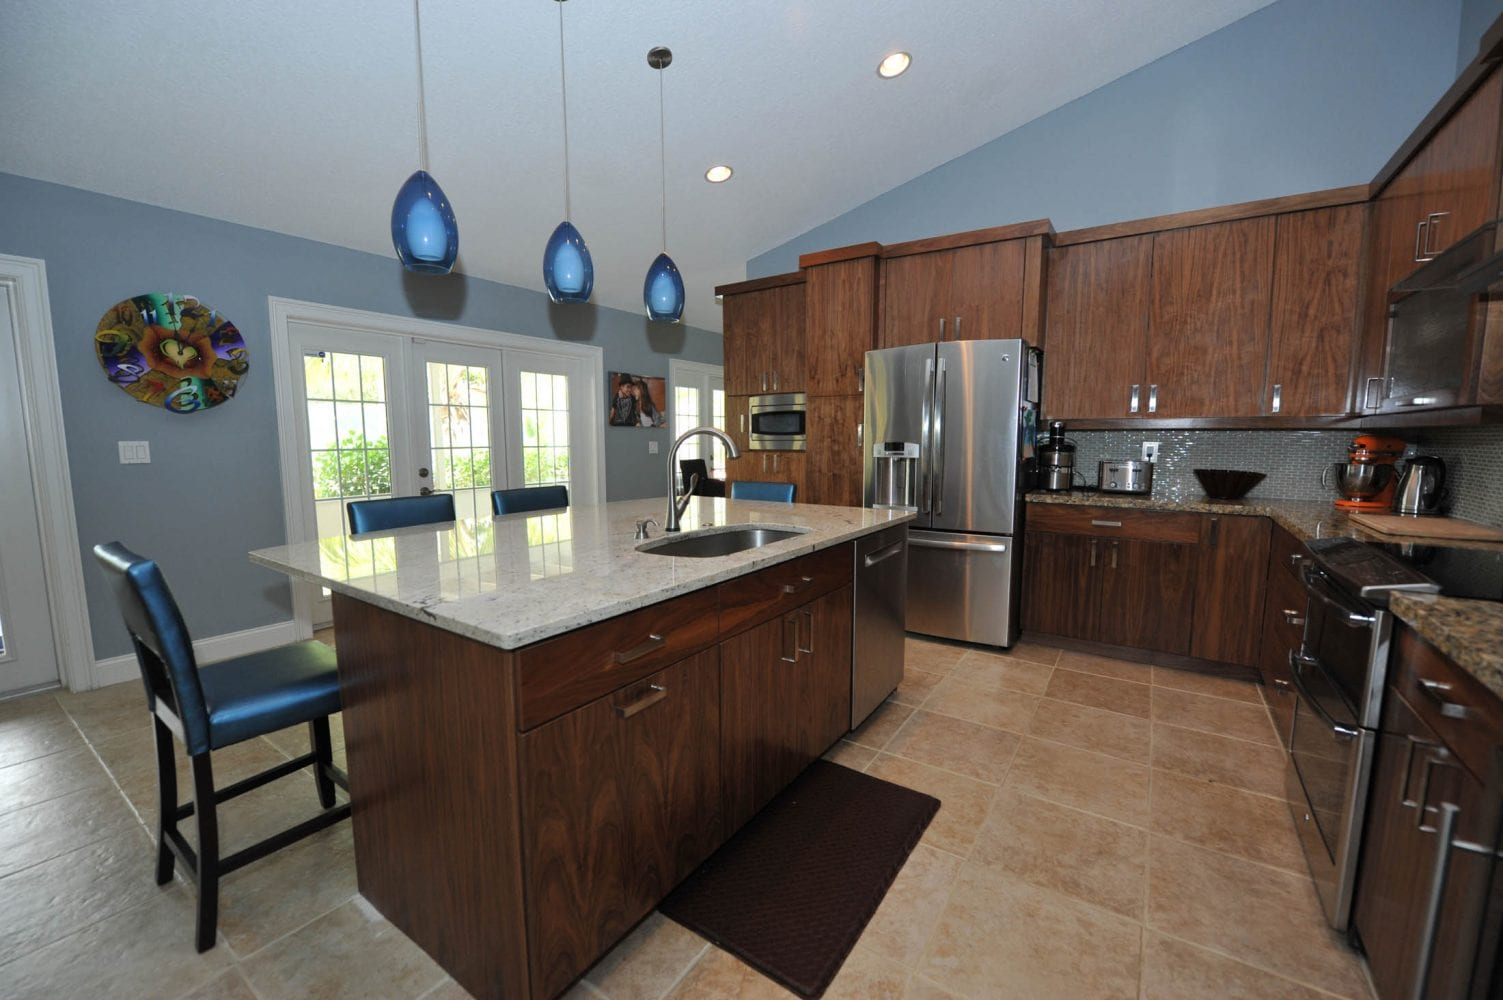 Lake Worth Residence Kitchen 2